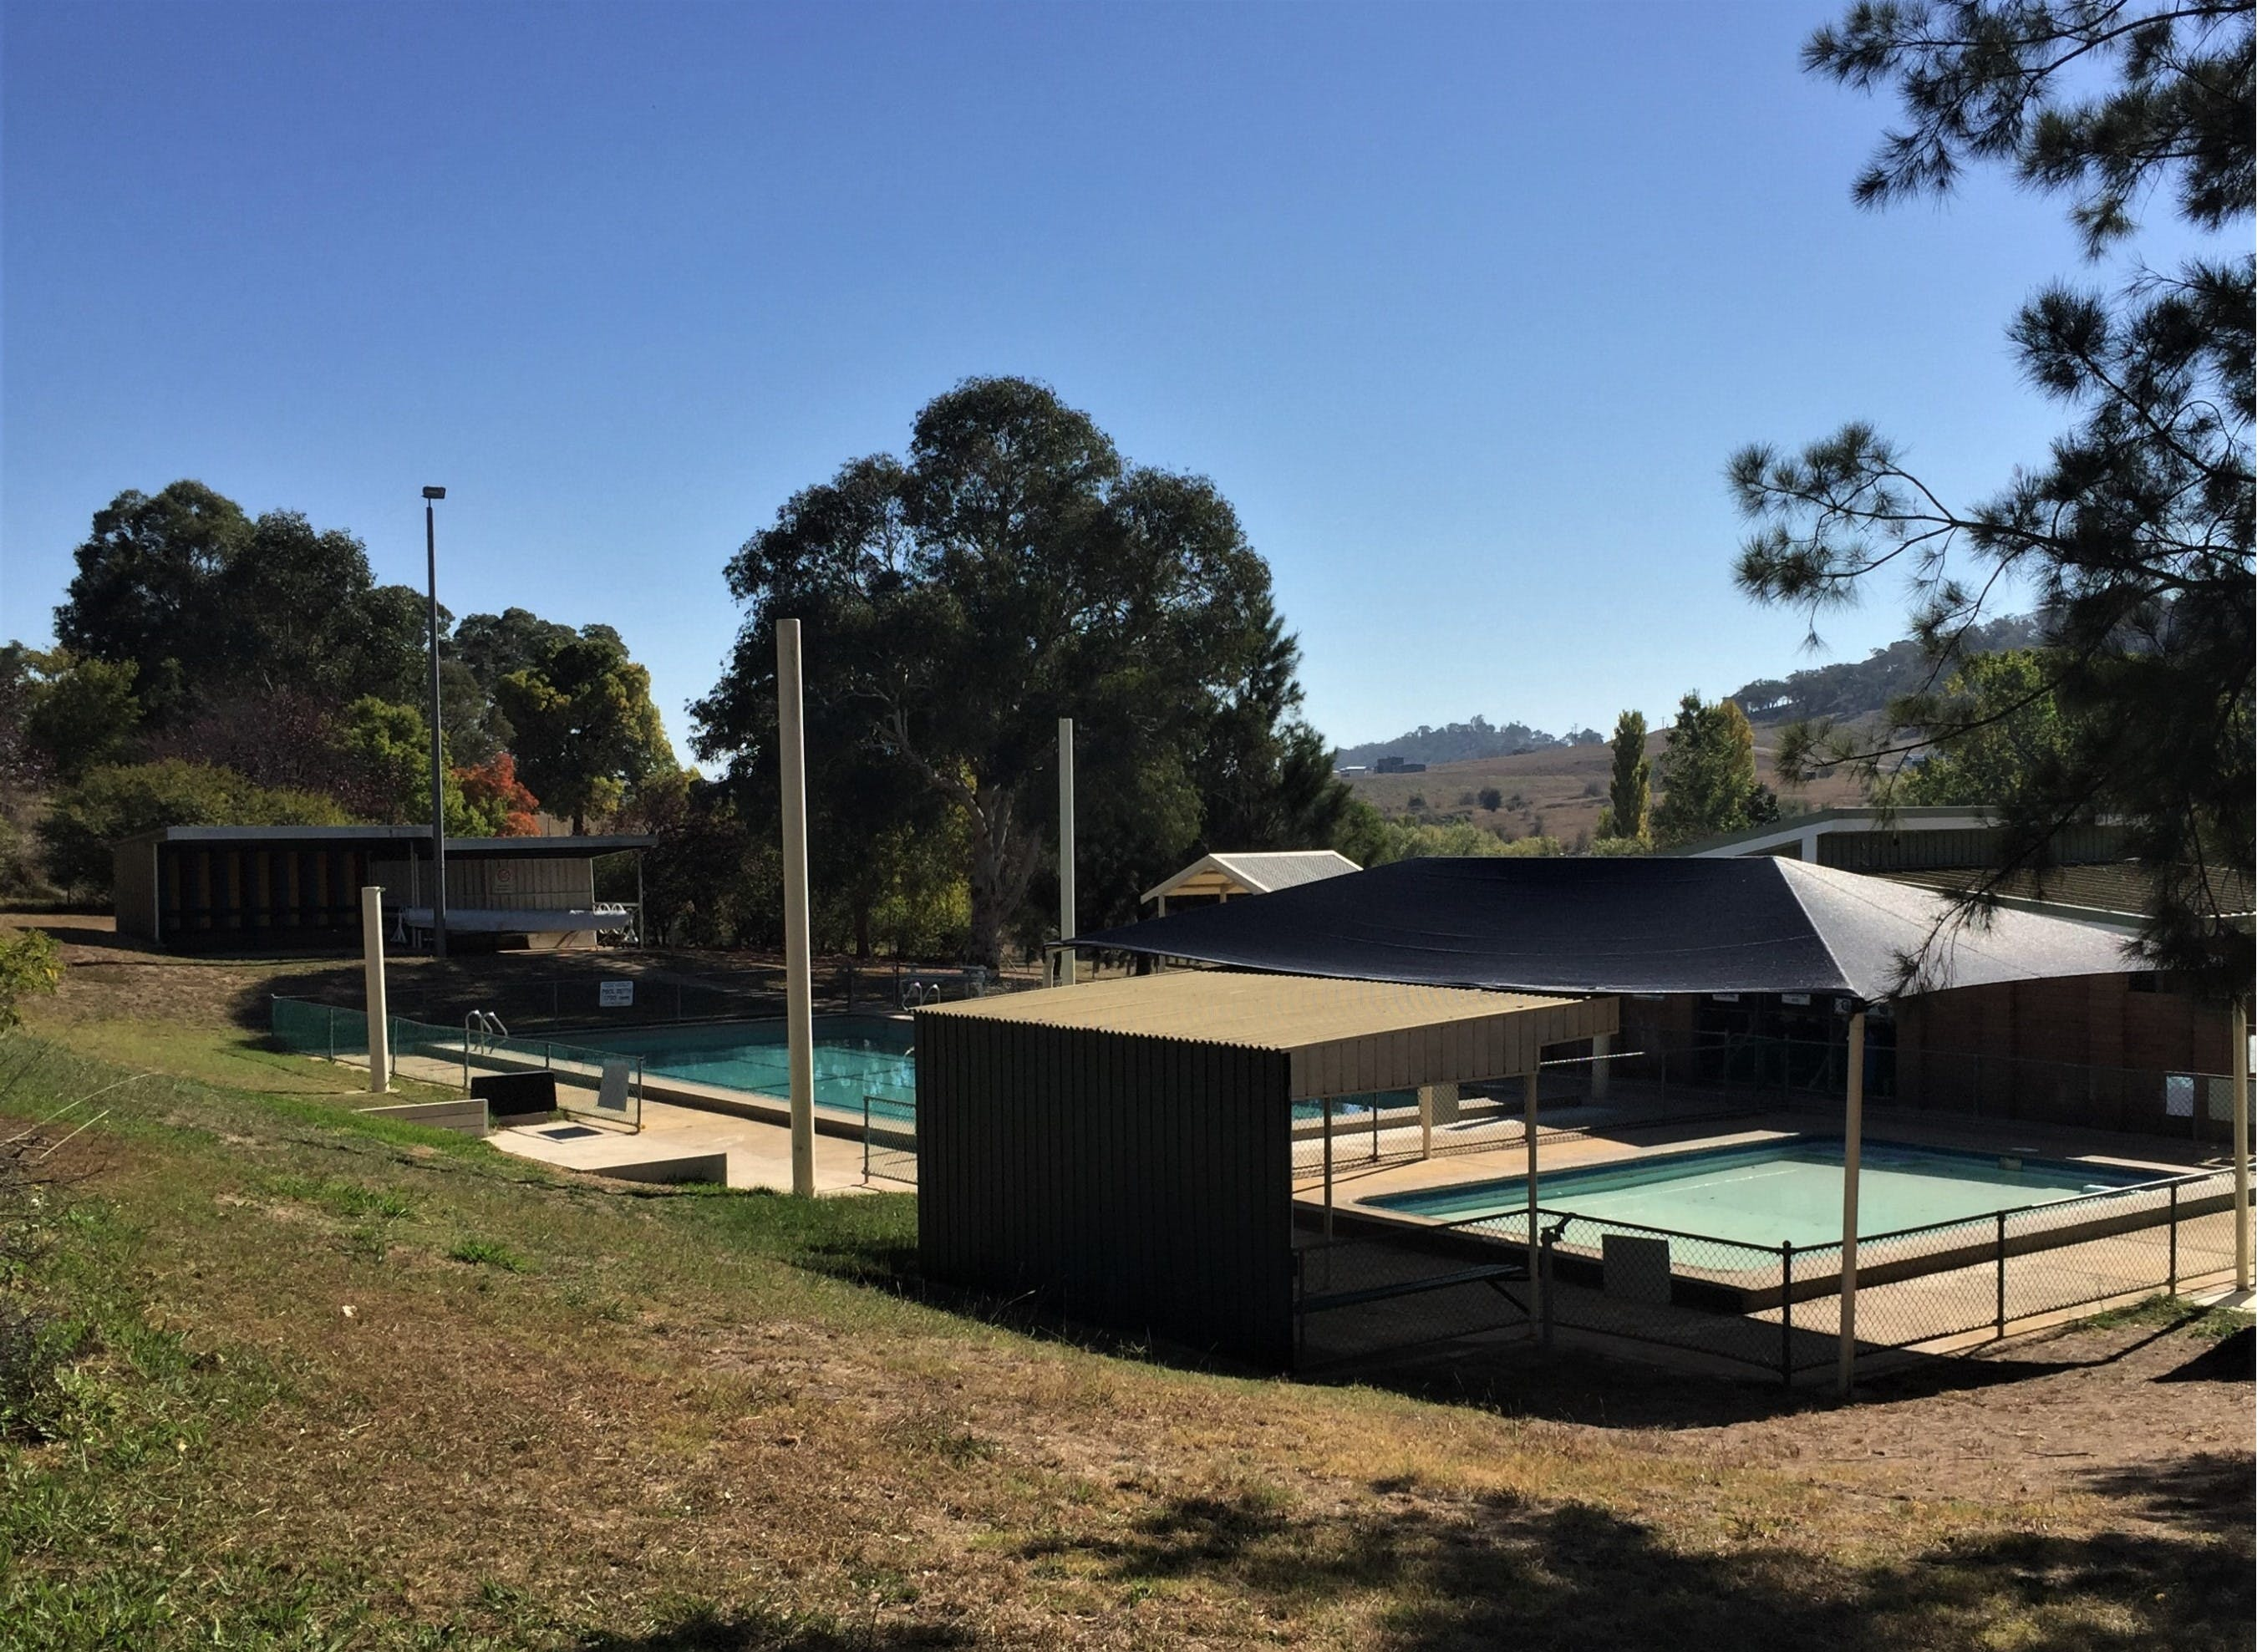 Gunning Pool - Attractions